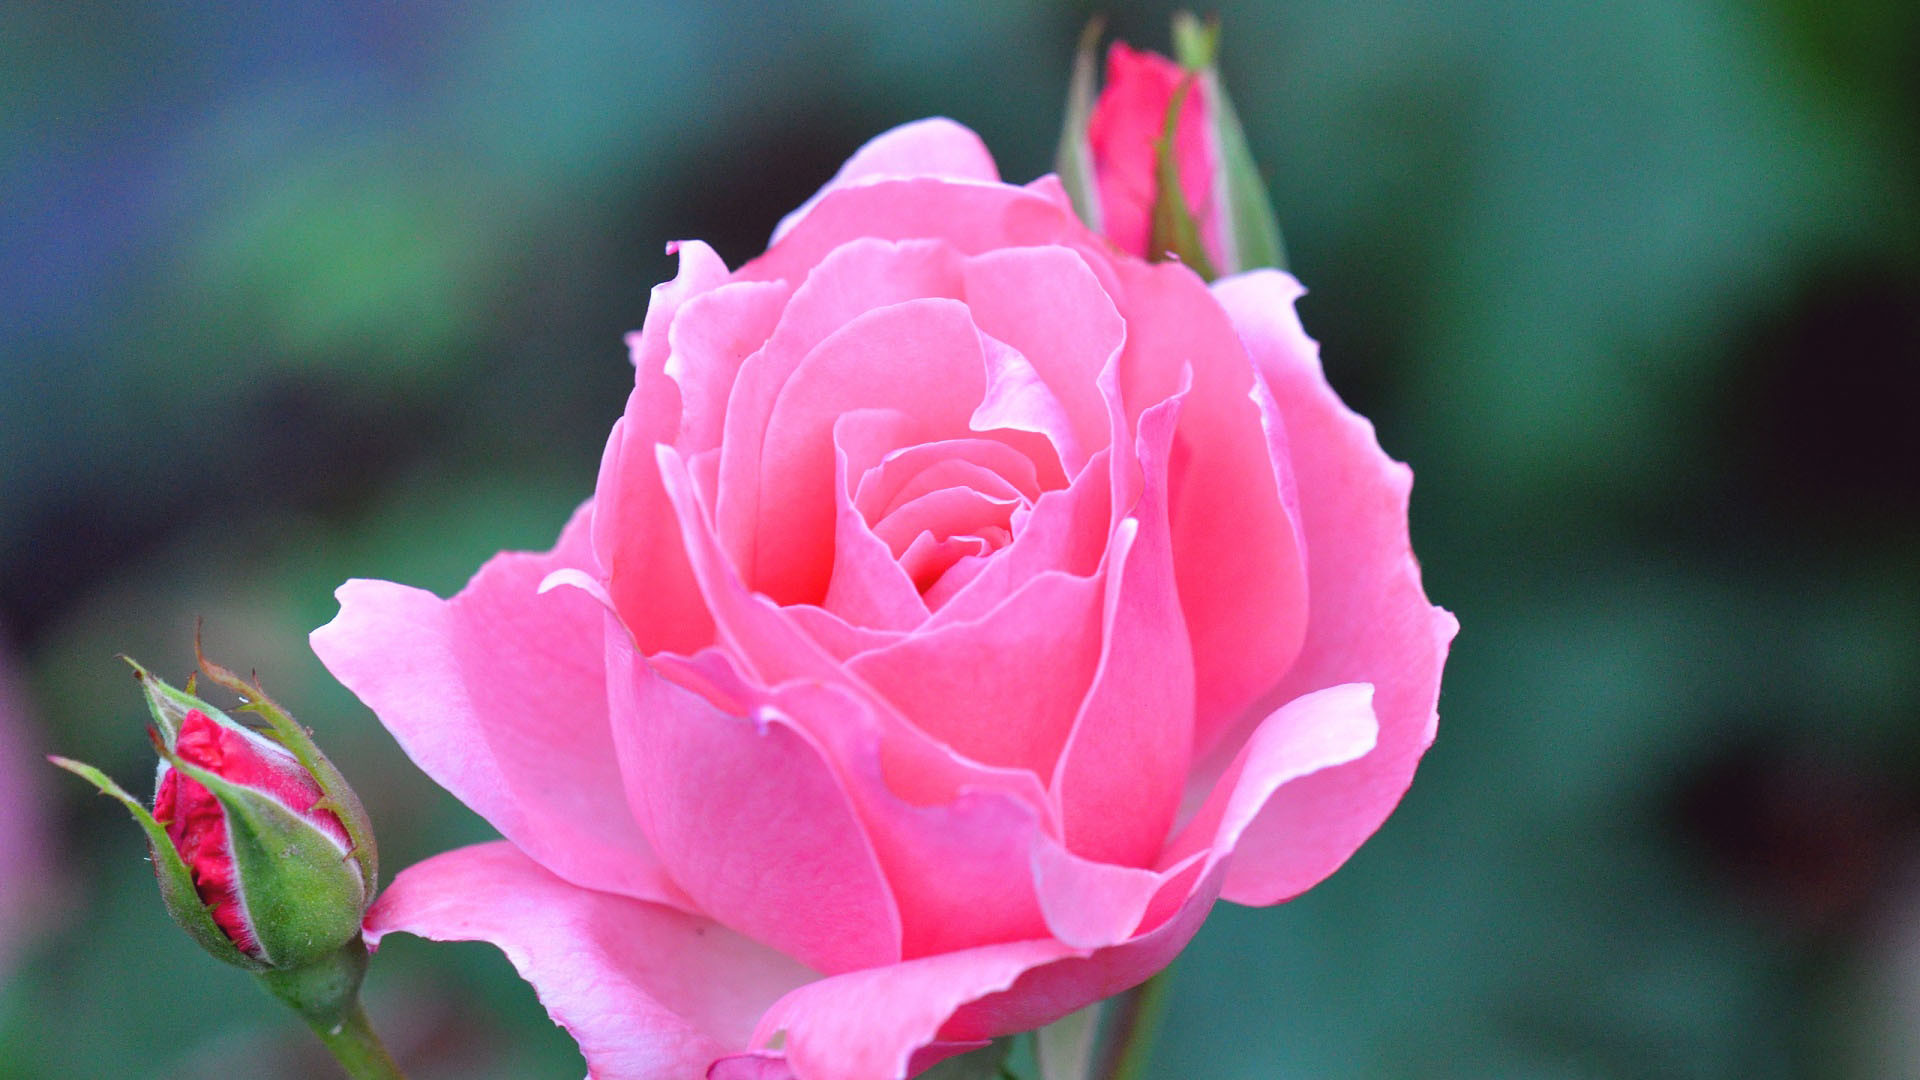 beautiful rose wallpapers ·①